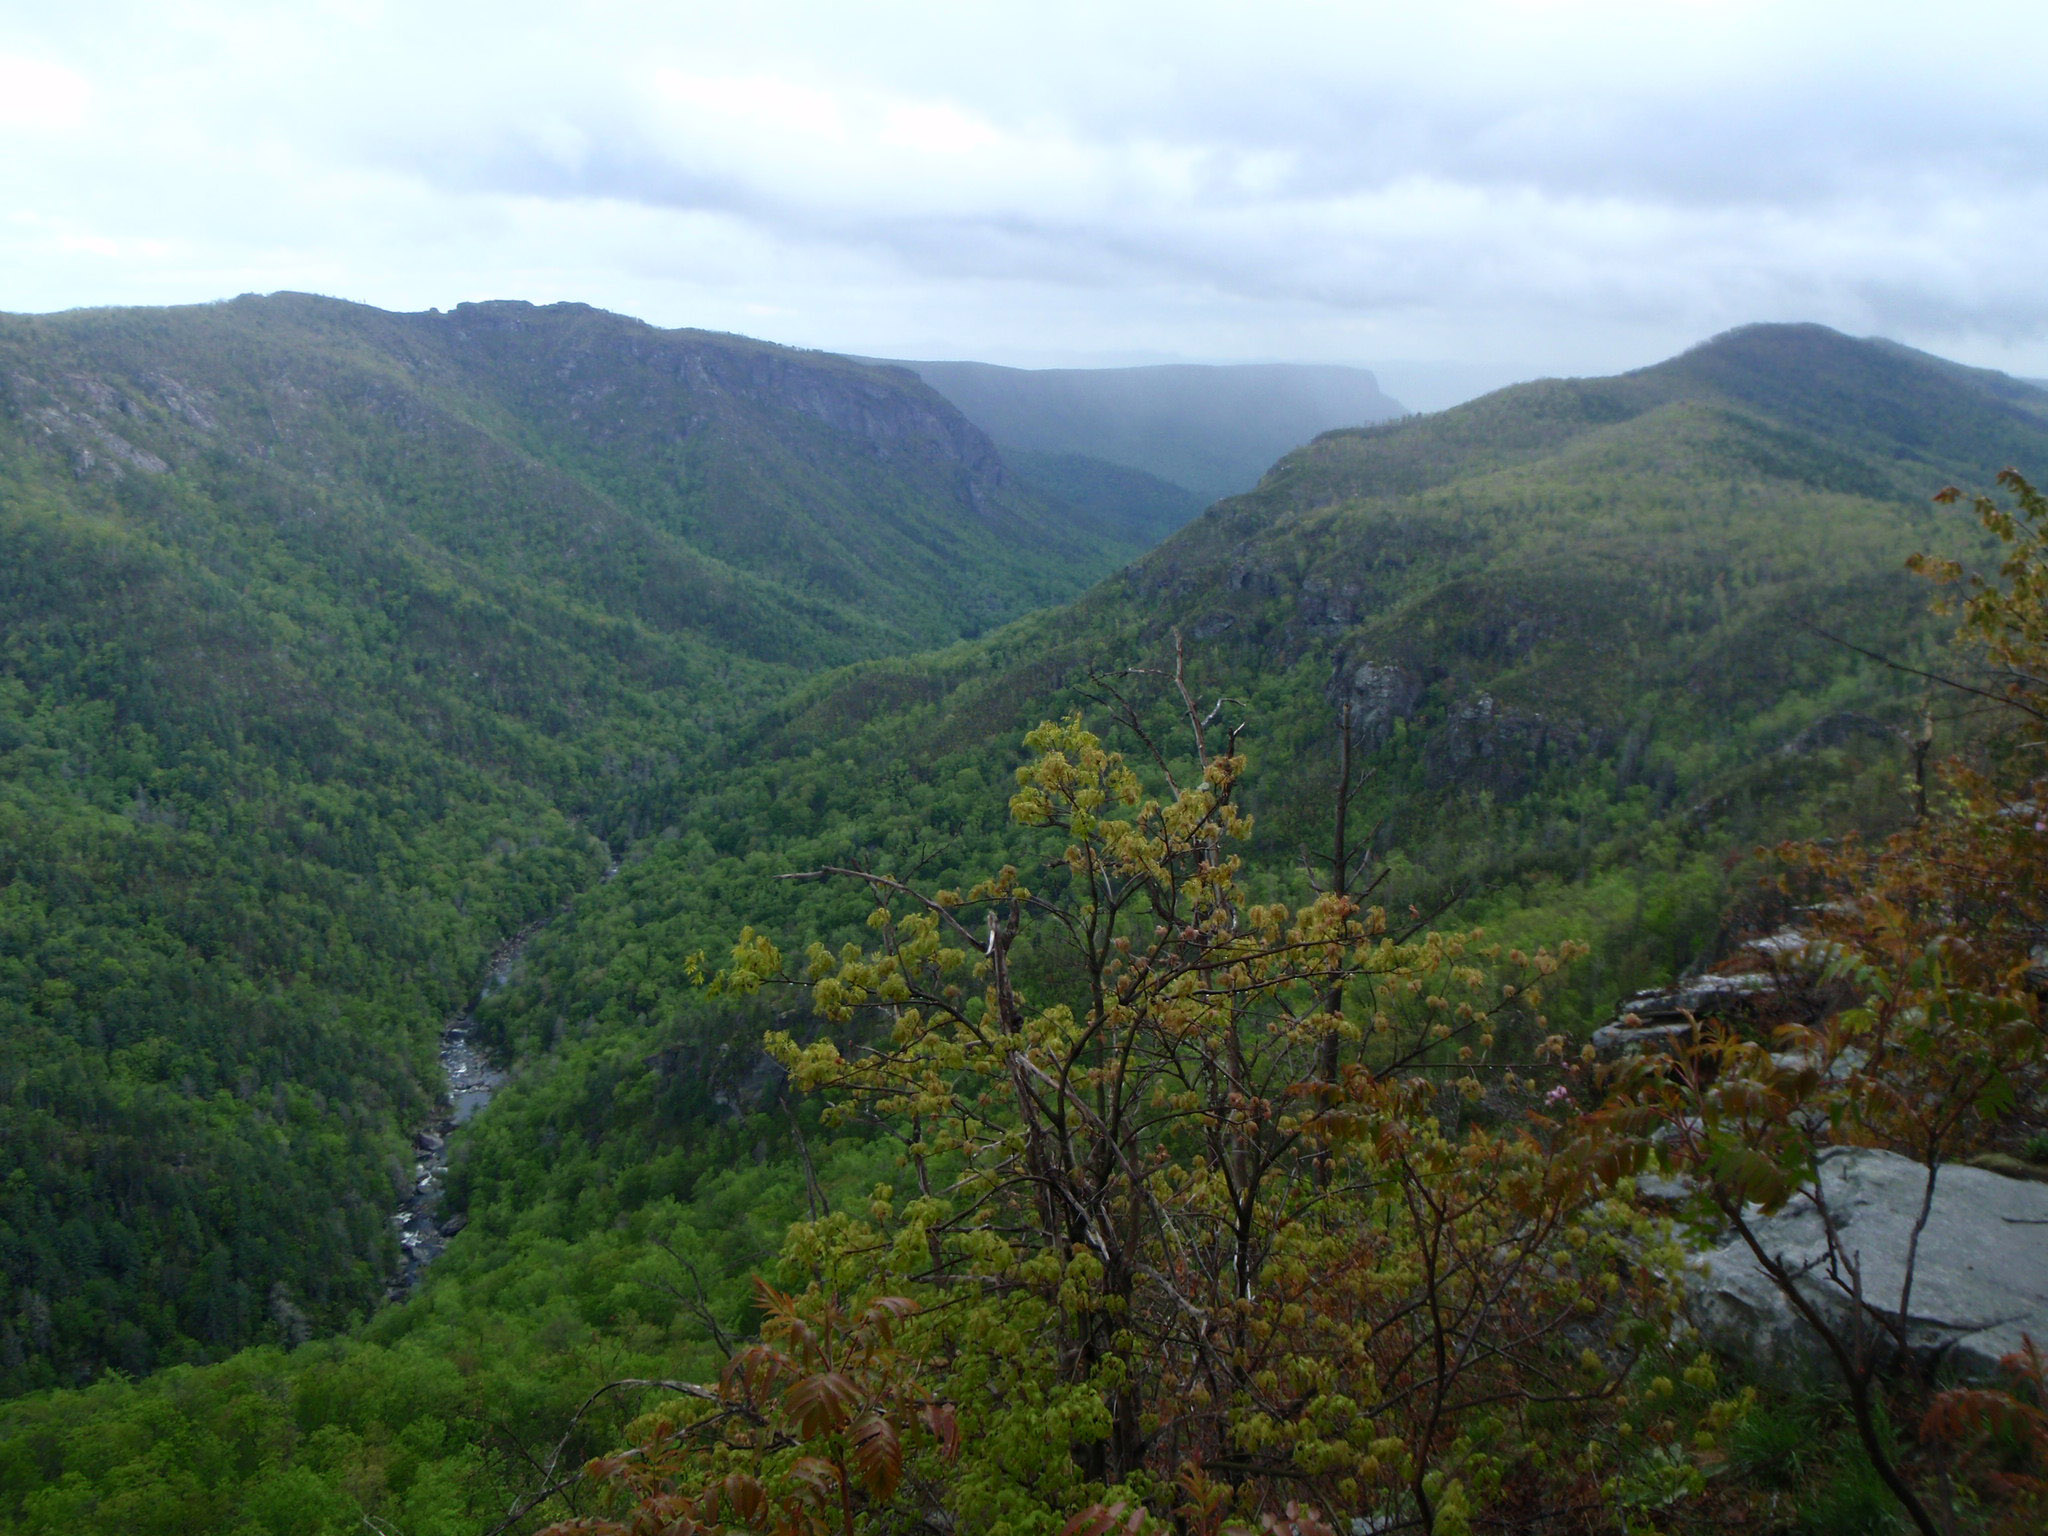 Linville Gorge: The Grand Canyon of the East